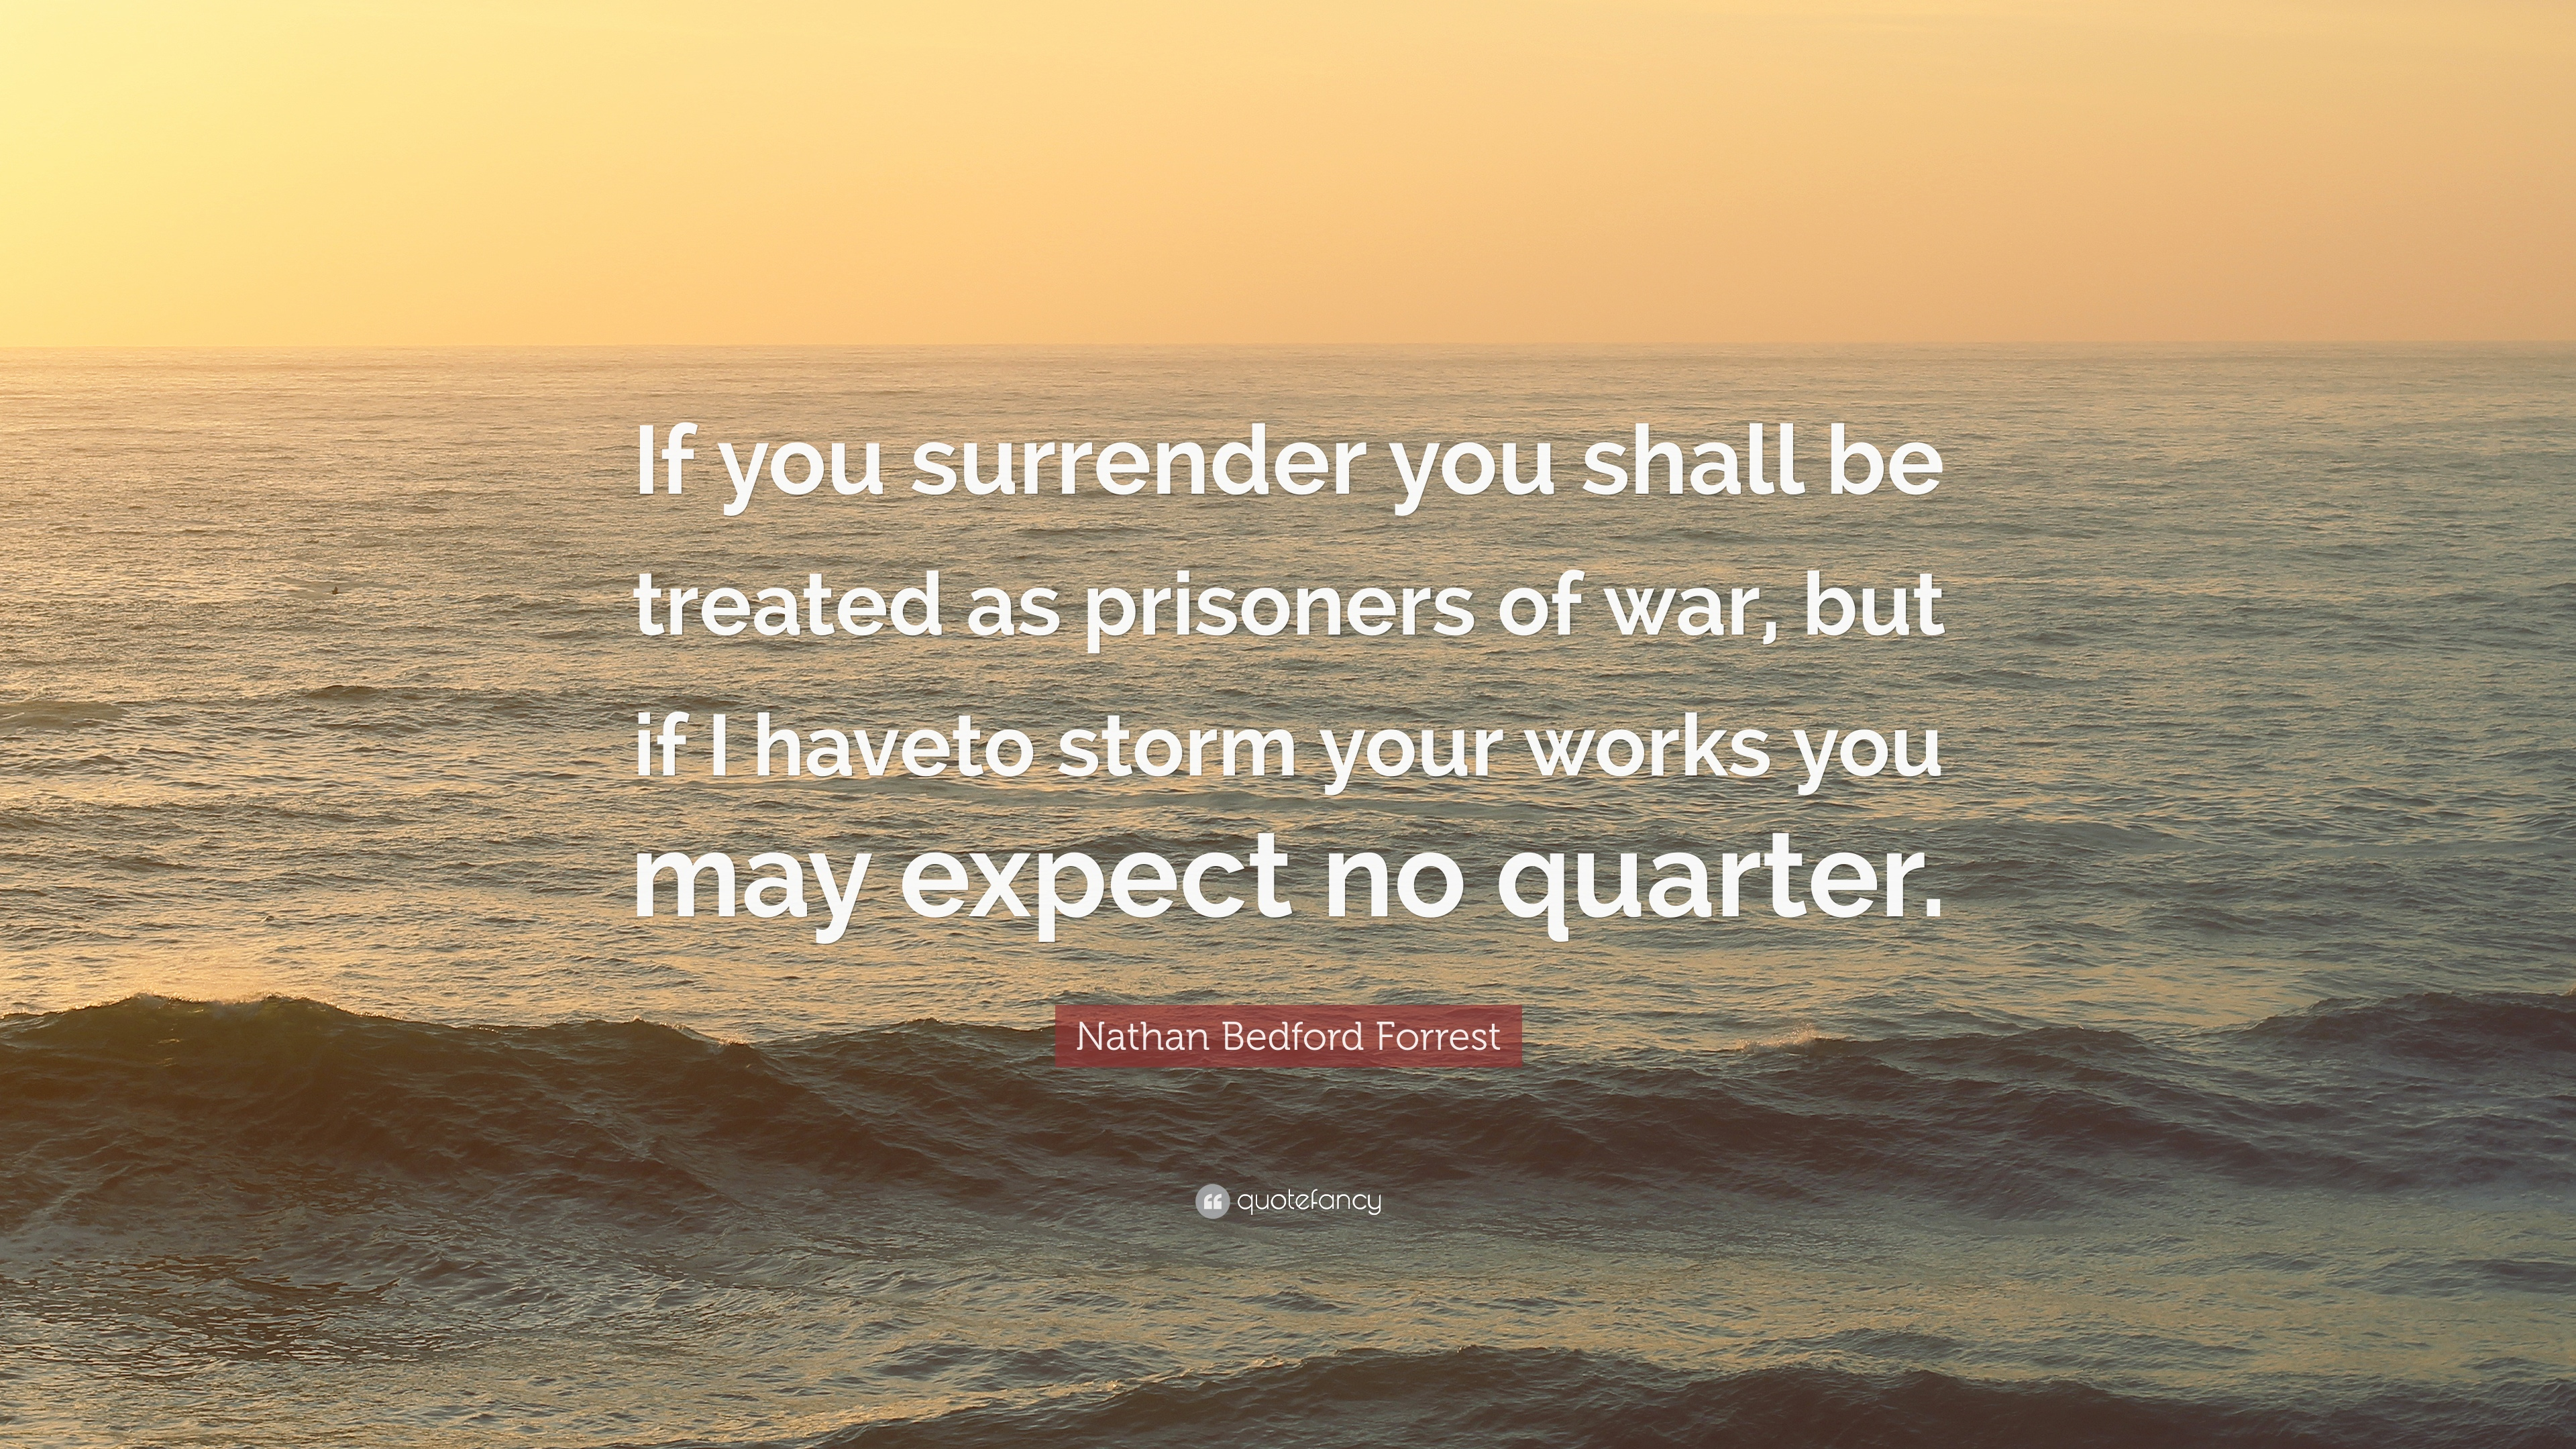 Nathan Bedford Forrest Quotes   Nathan Bedford Forrest Quote If You Surrender You Shall Be Treated